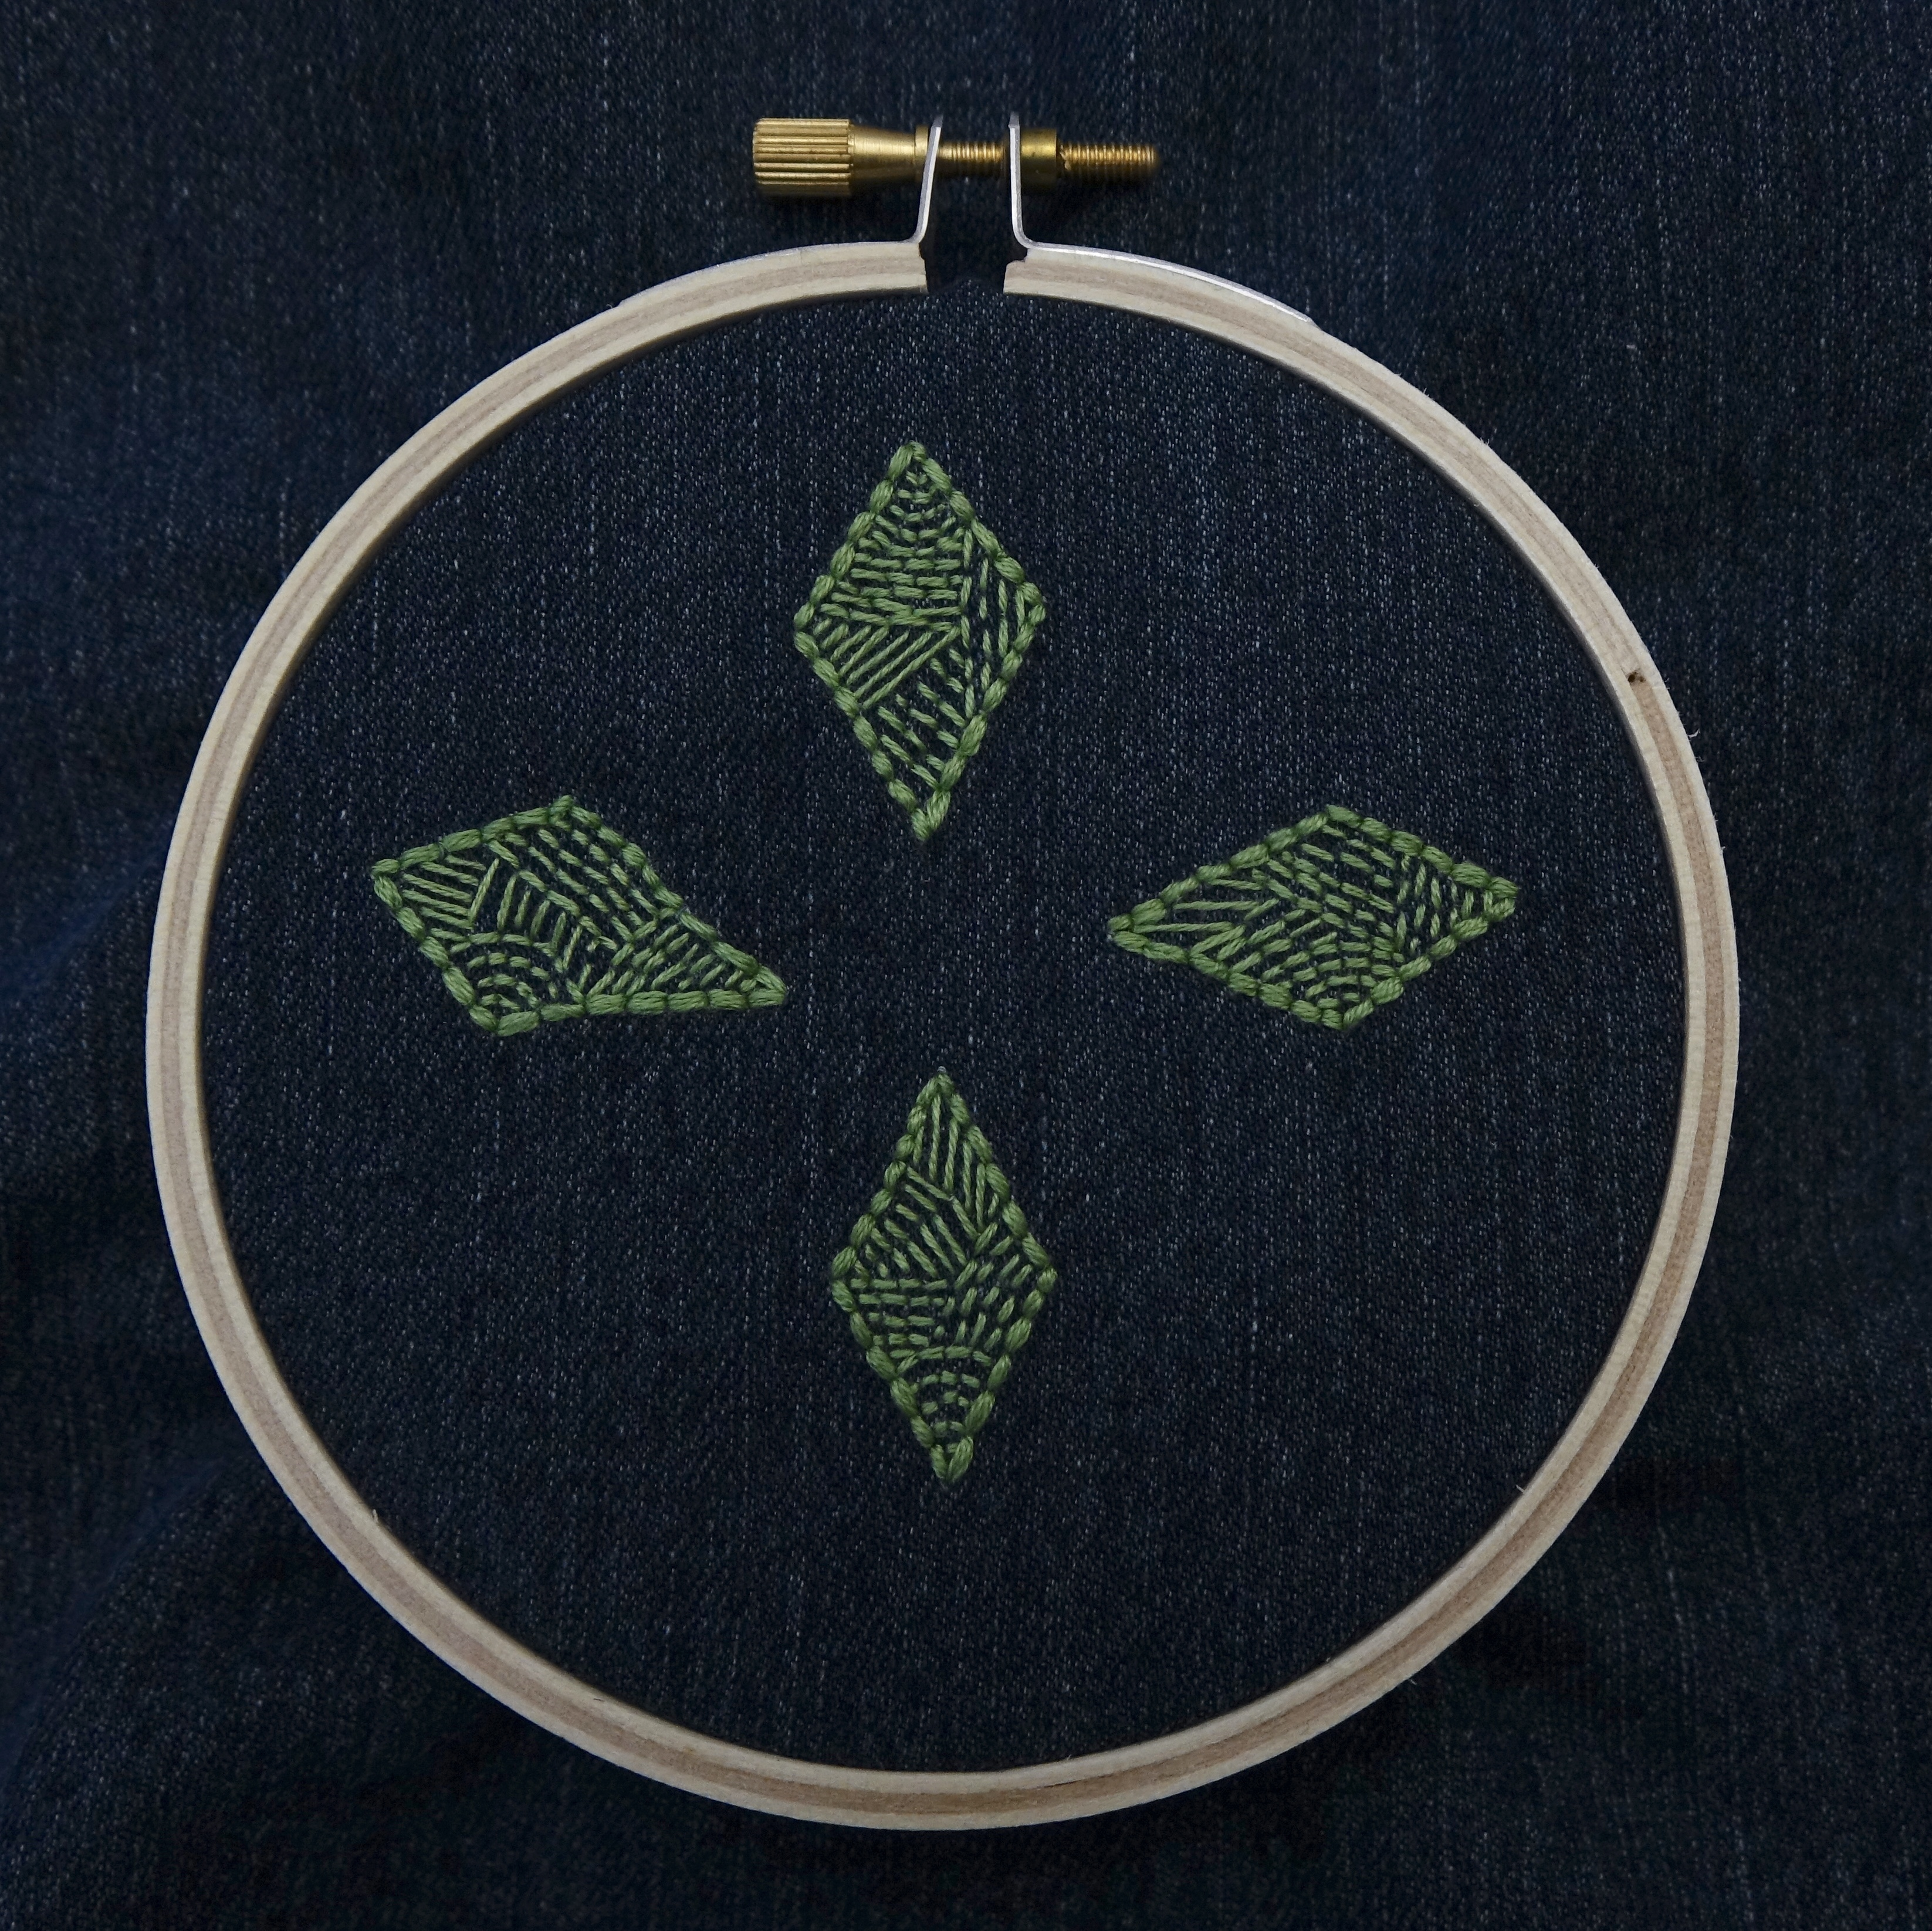 An embroidery hoop set with dark denim, four green diamonds embroidered in a compass pattern.